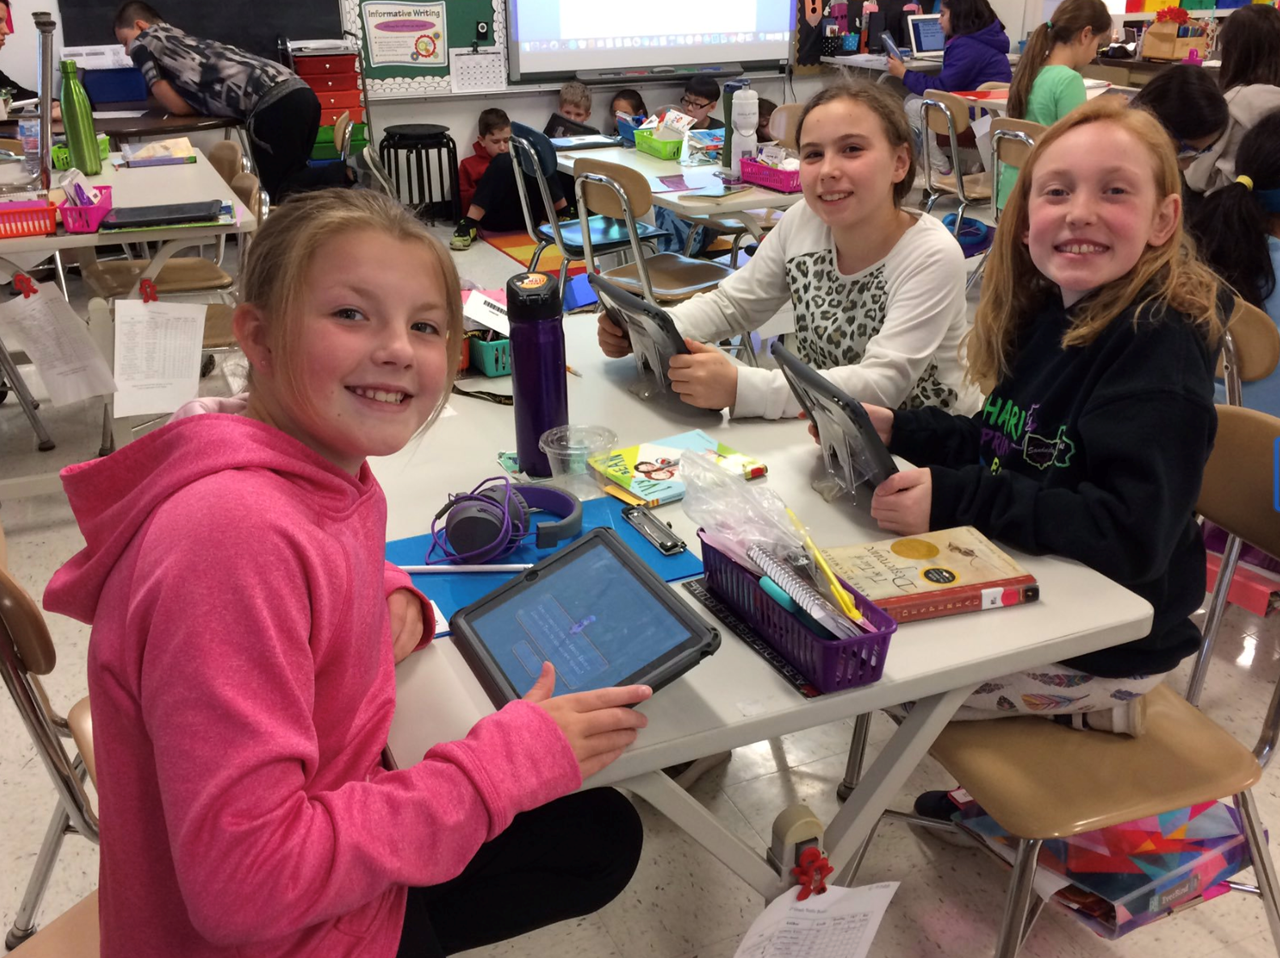 Three girls smiling while working on their iPads.